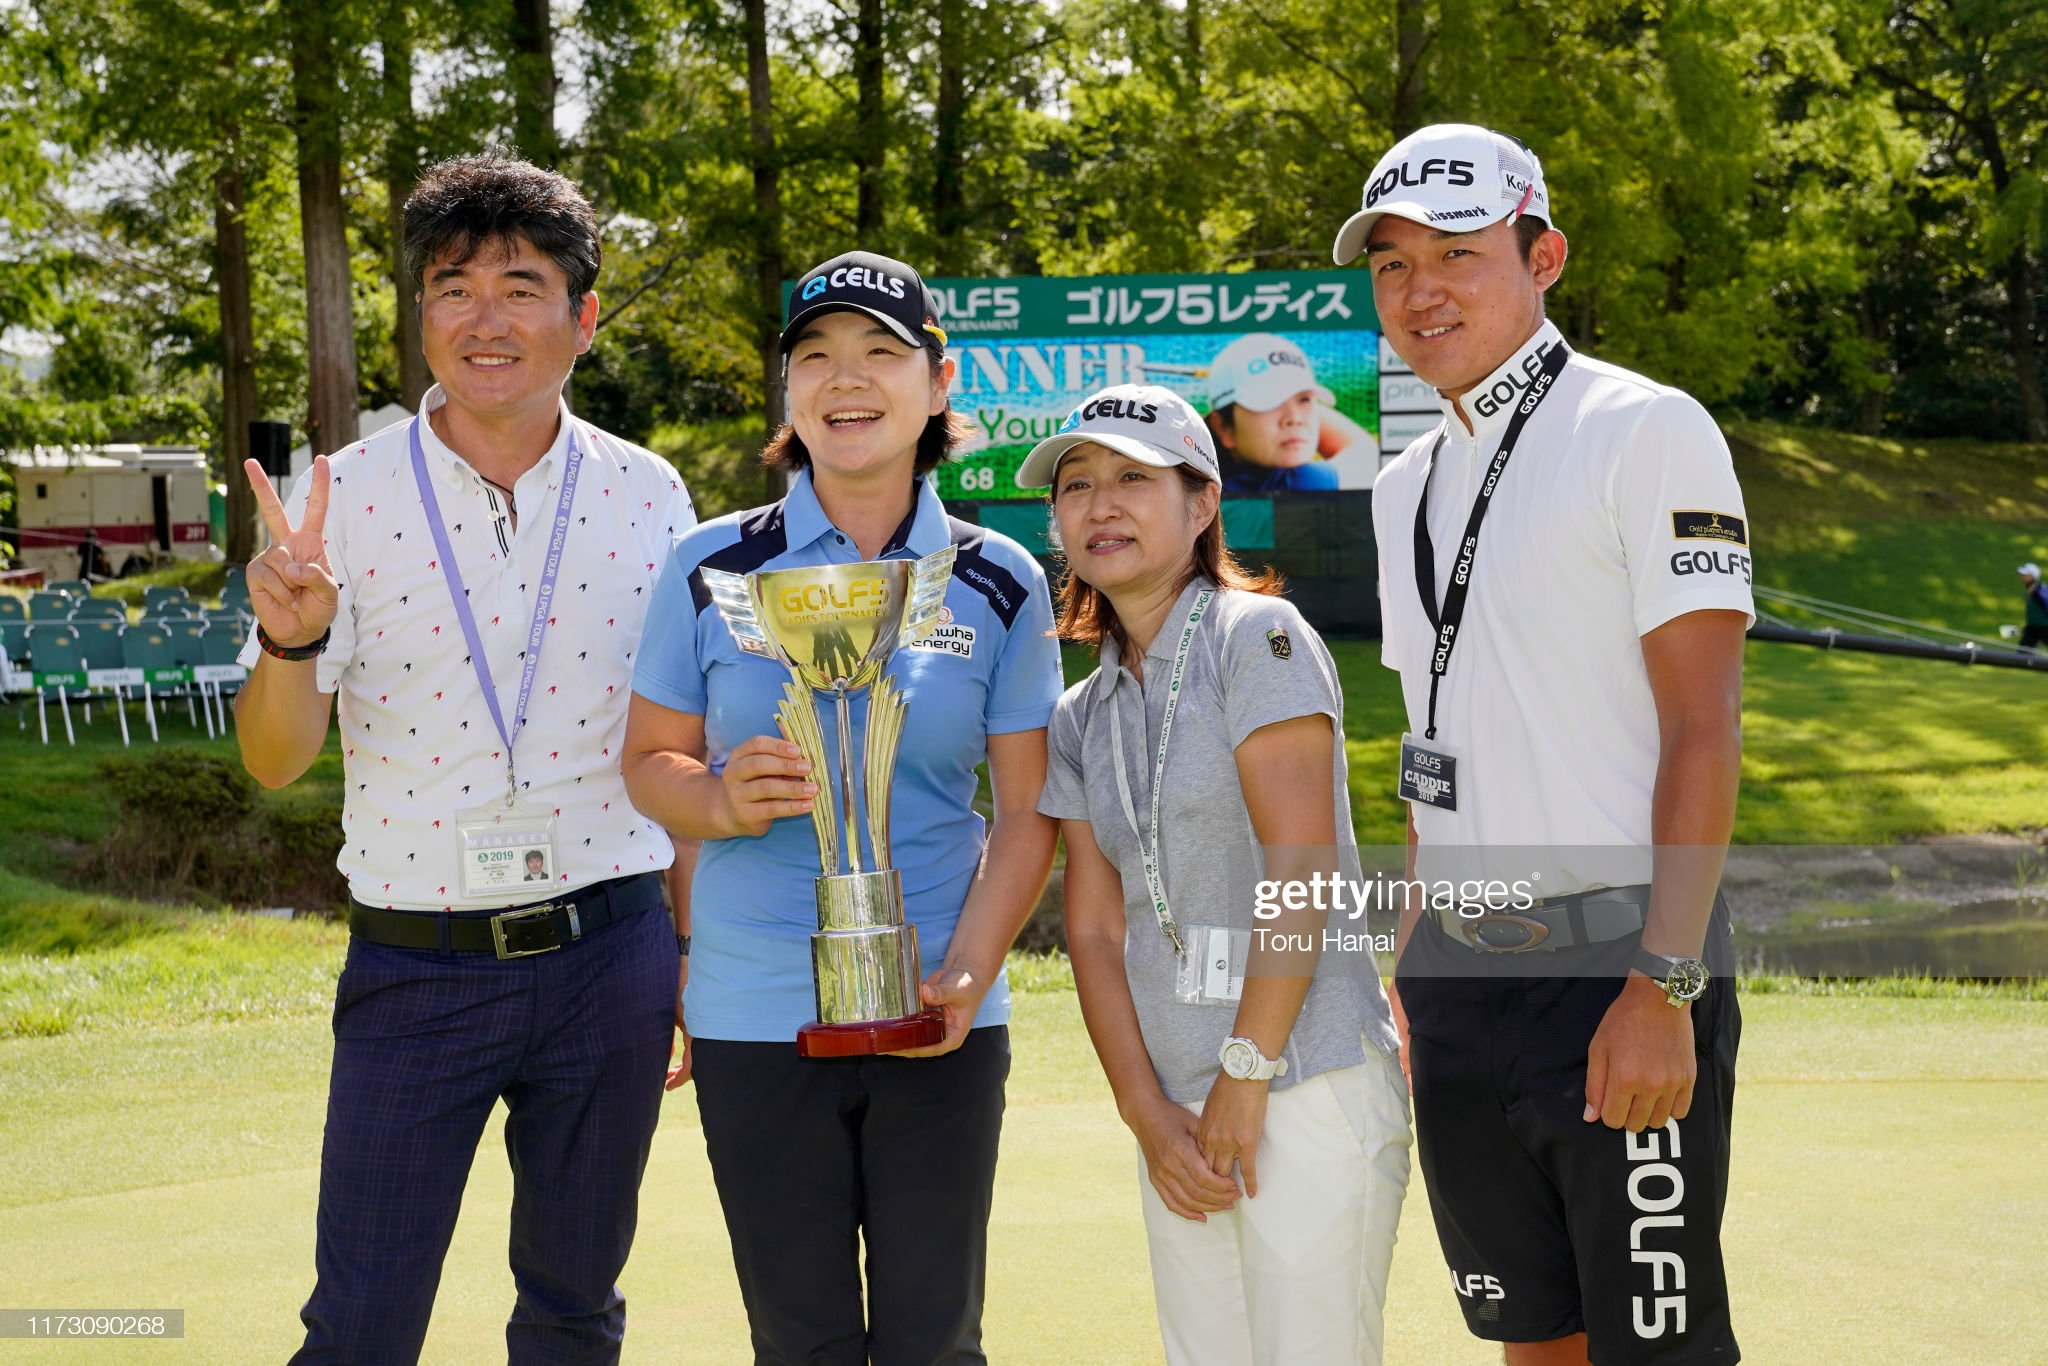 https://media.gettyimages.com/photos/minyoung-lee-of-south-korea-poses-after-winning-the-tournament-the-picture-id1173090268?s=2048x2048